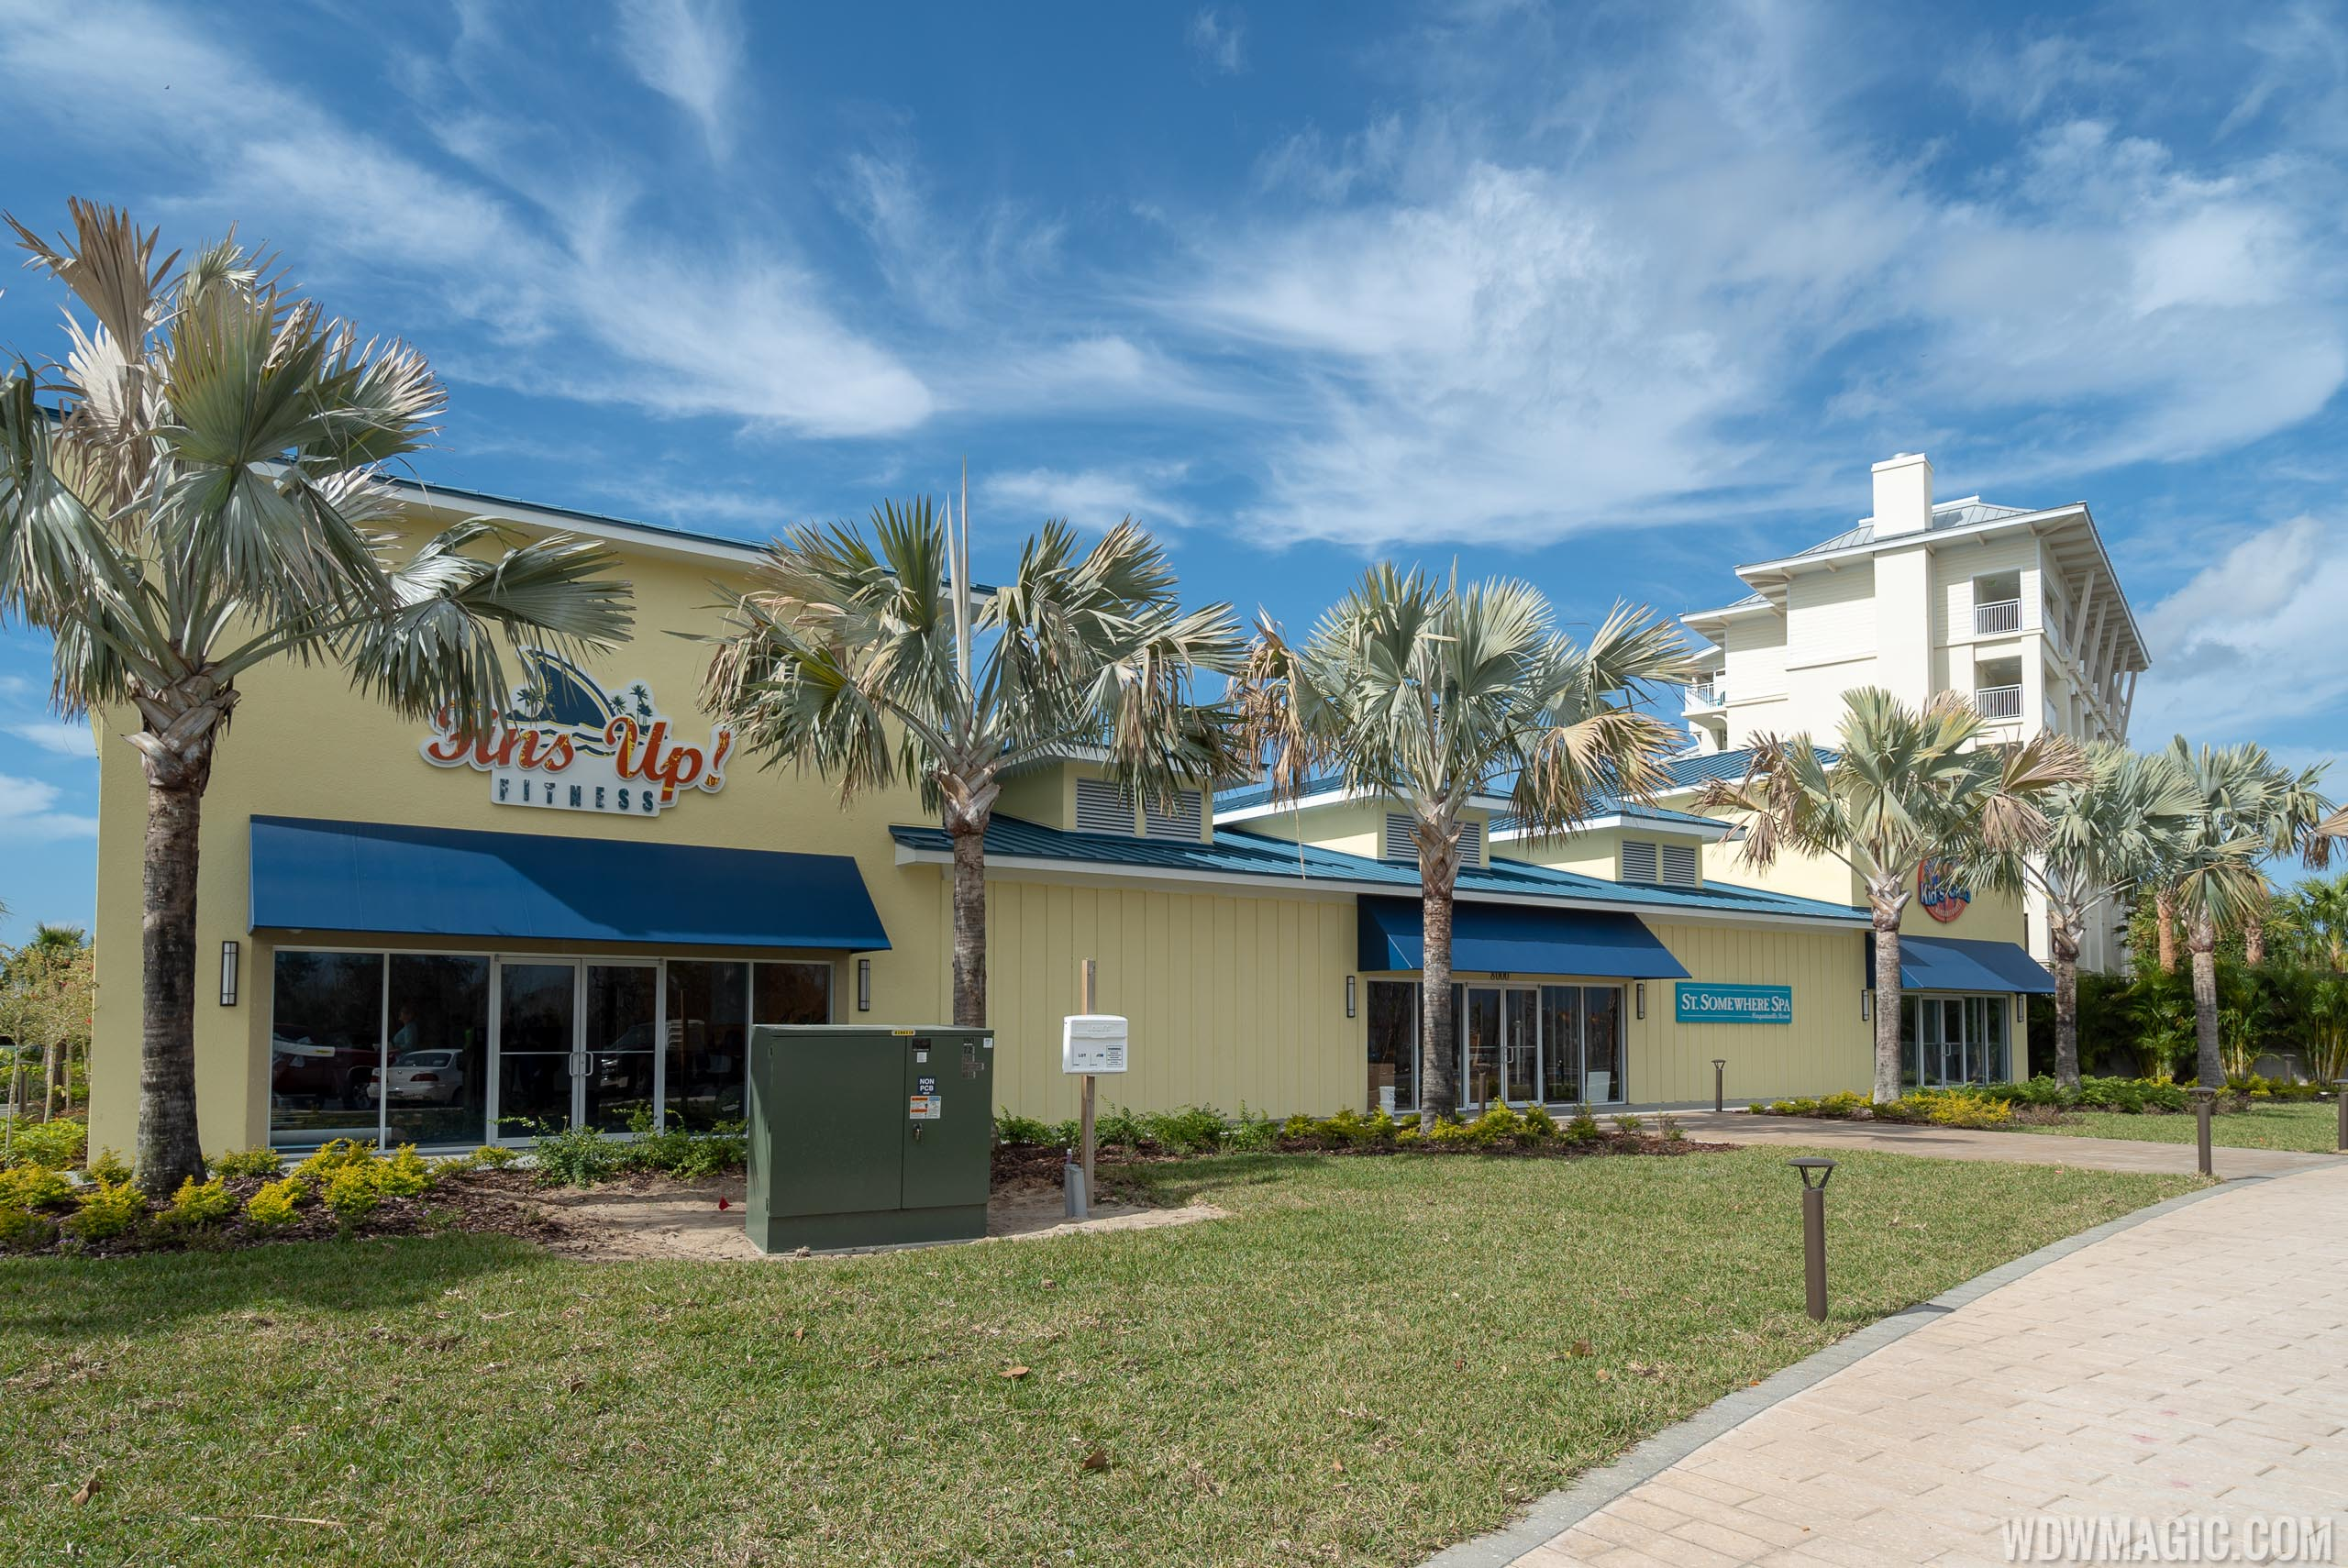 Margaritaville Resort Orlando tour